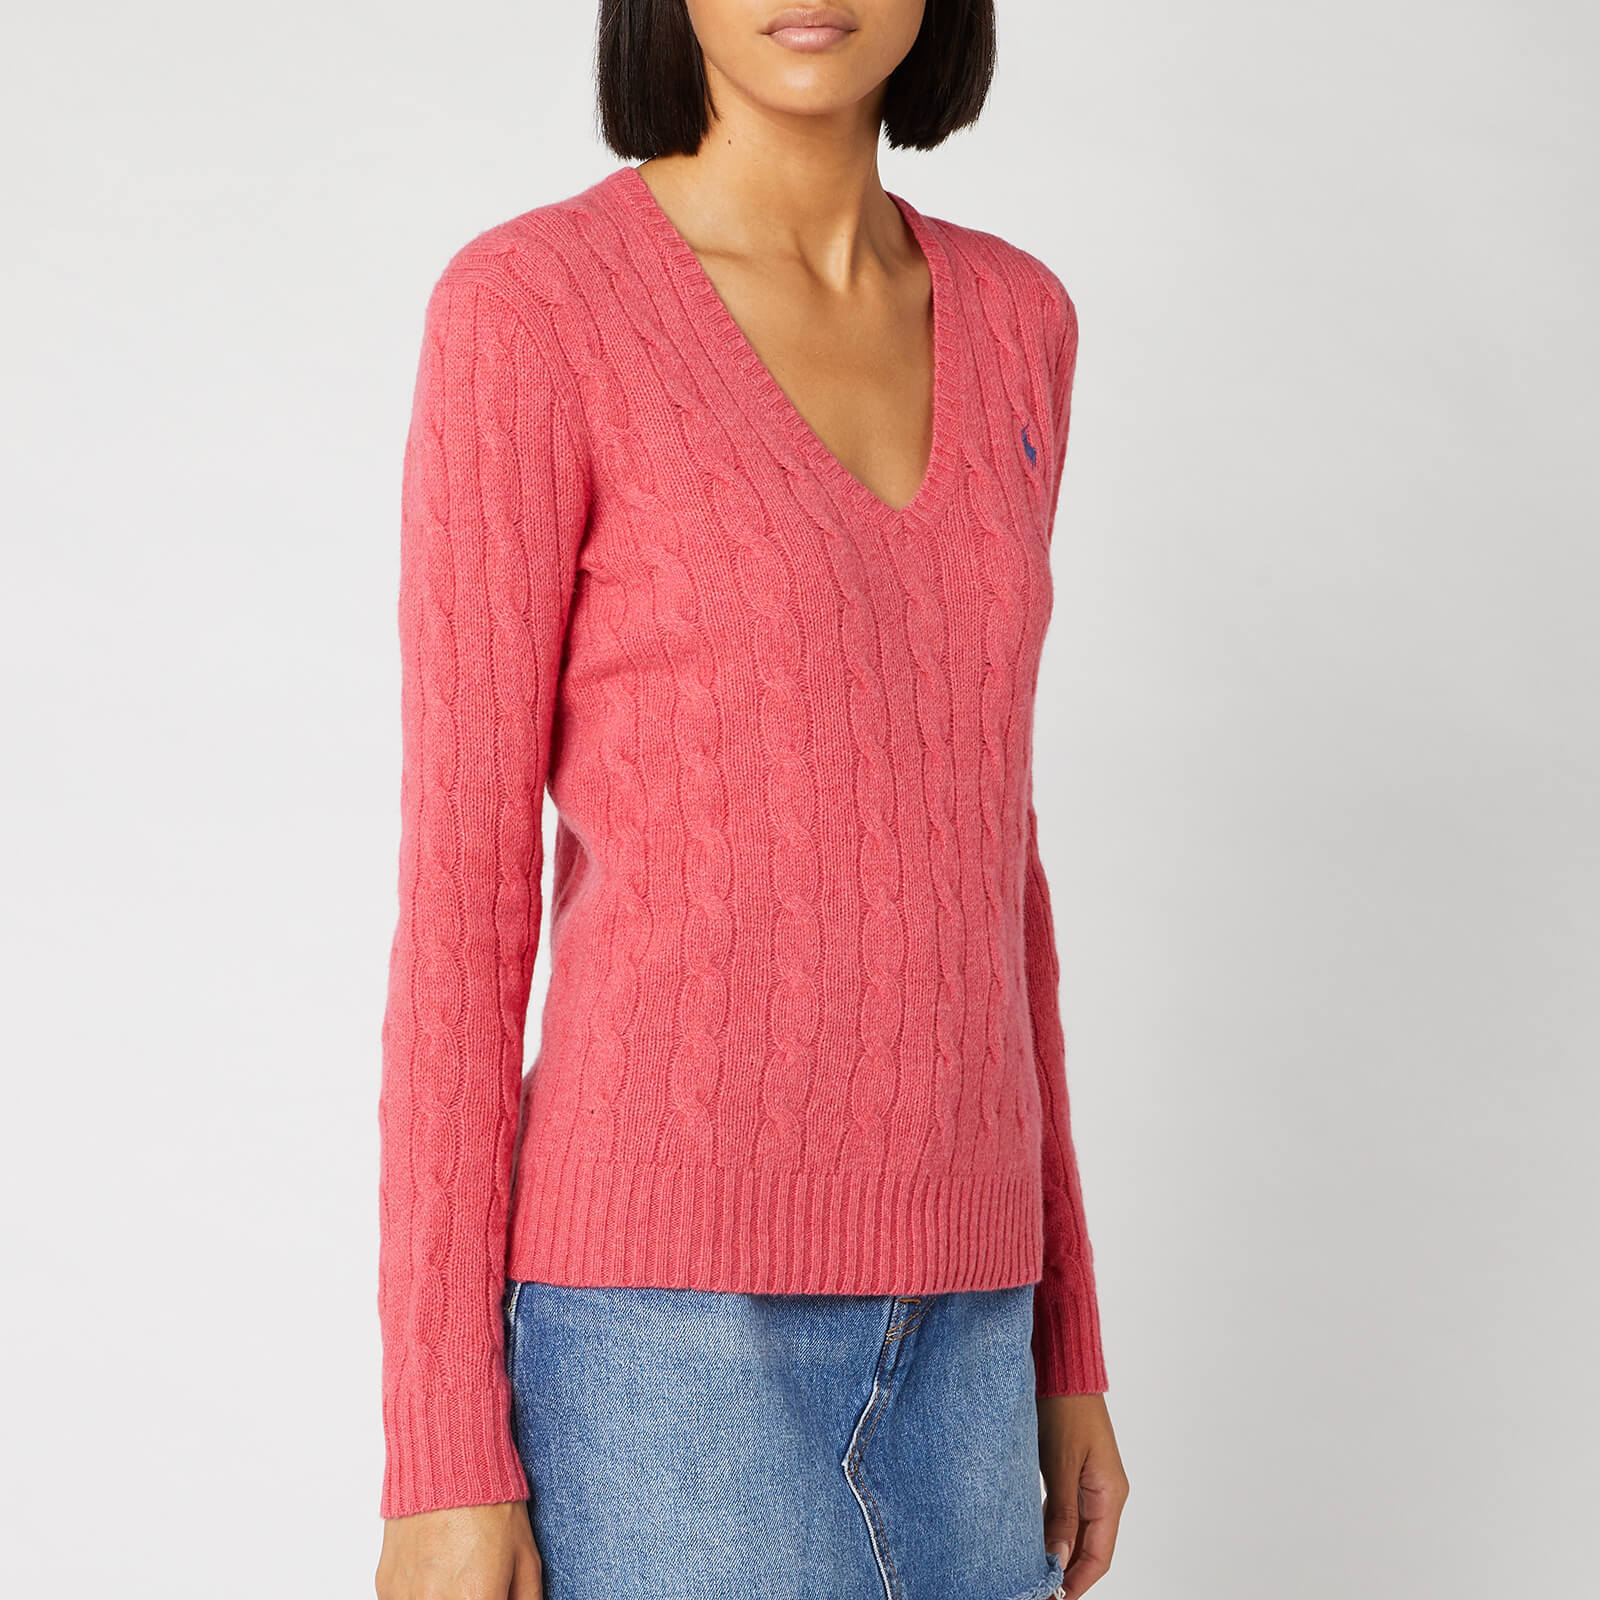 d7311377baab27 Polo Ralph Lauren Women's Kimberly Classic Long Sleeve Jumper - Geranium  Heather - Free UK Delivery over £50